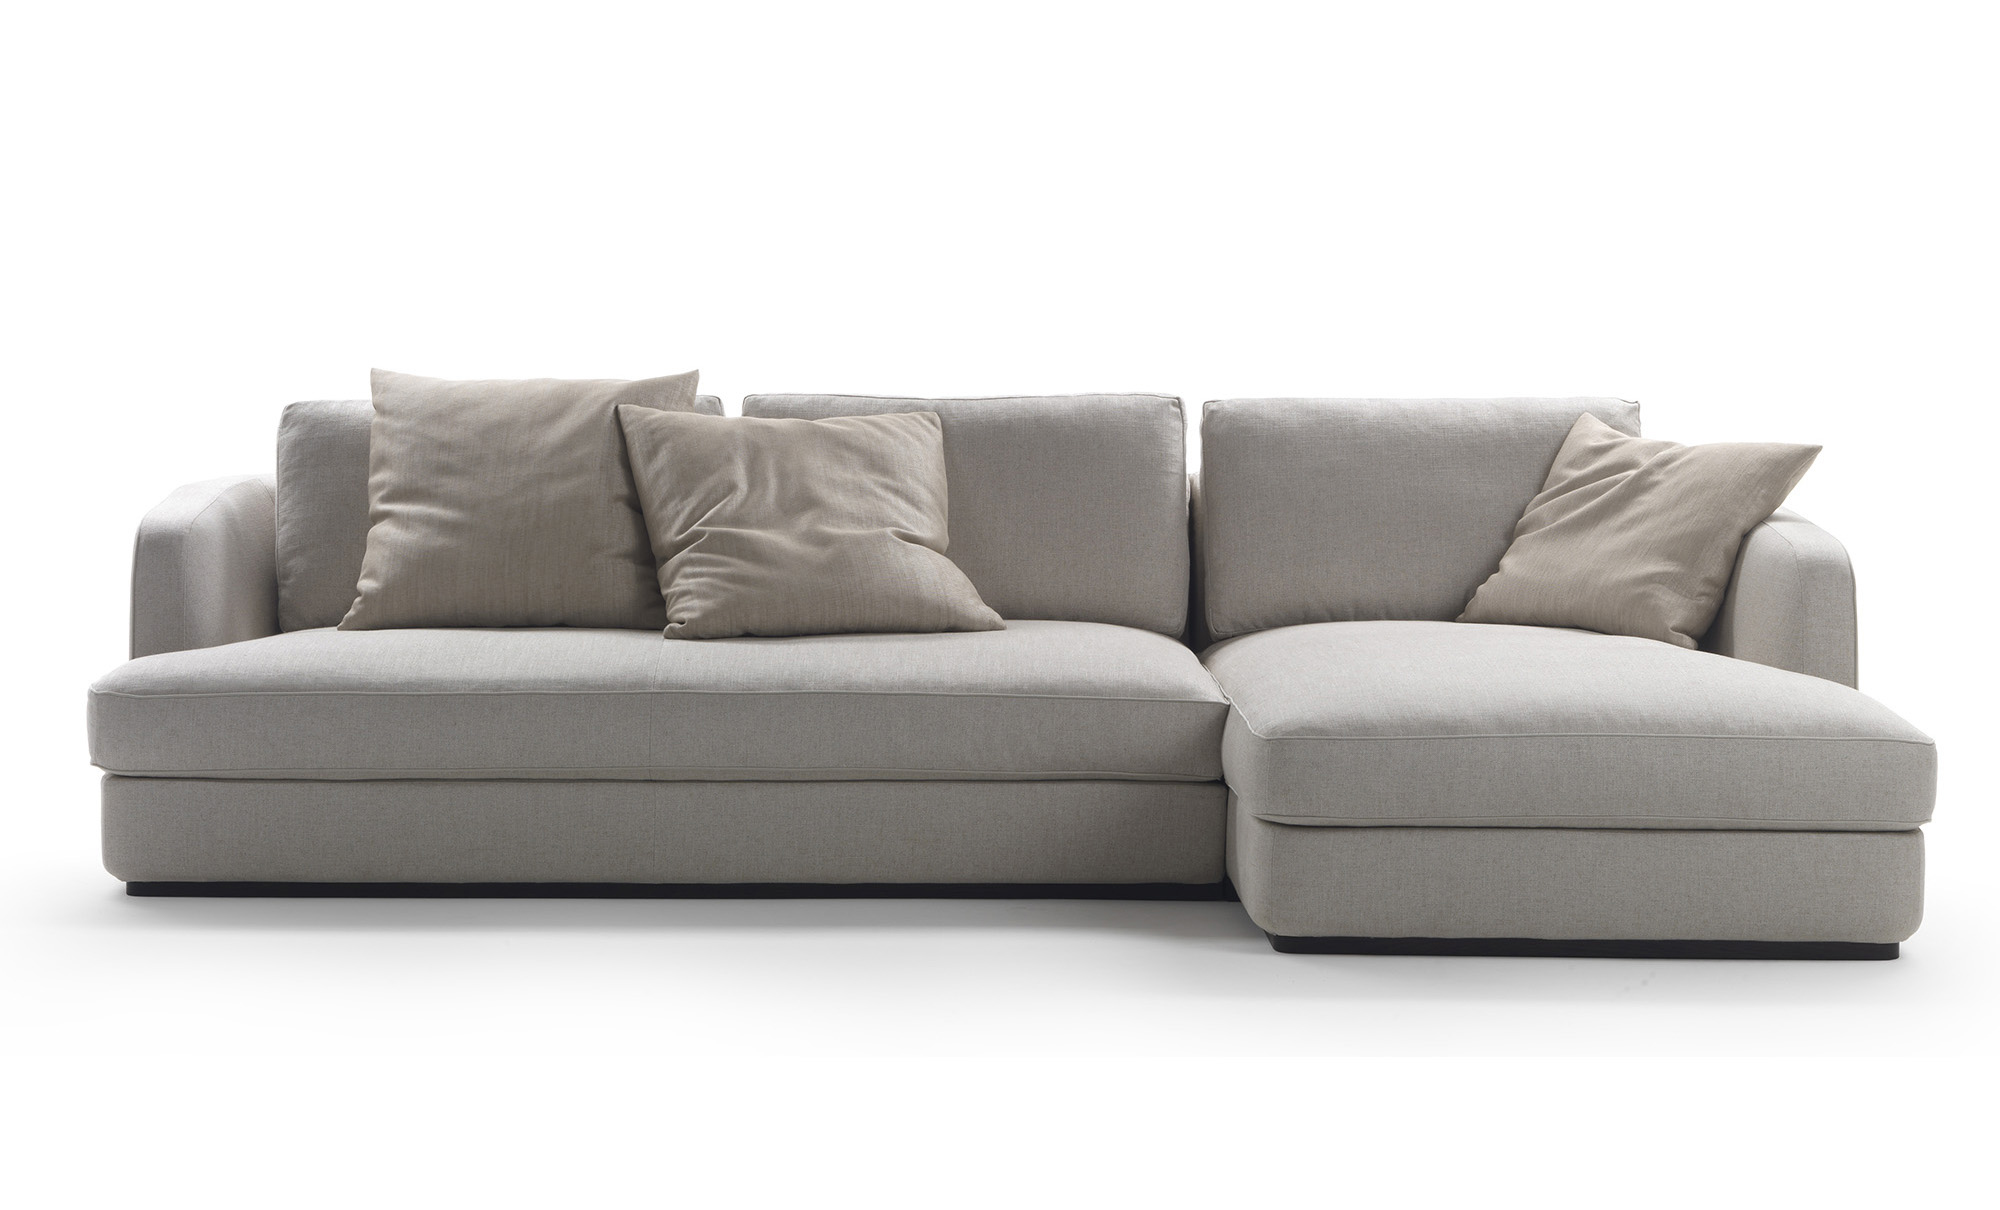 Modular Living Room Furniture Designer Sofas And Couches Sydney Melbourne Fanuli Furniture